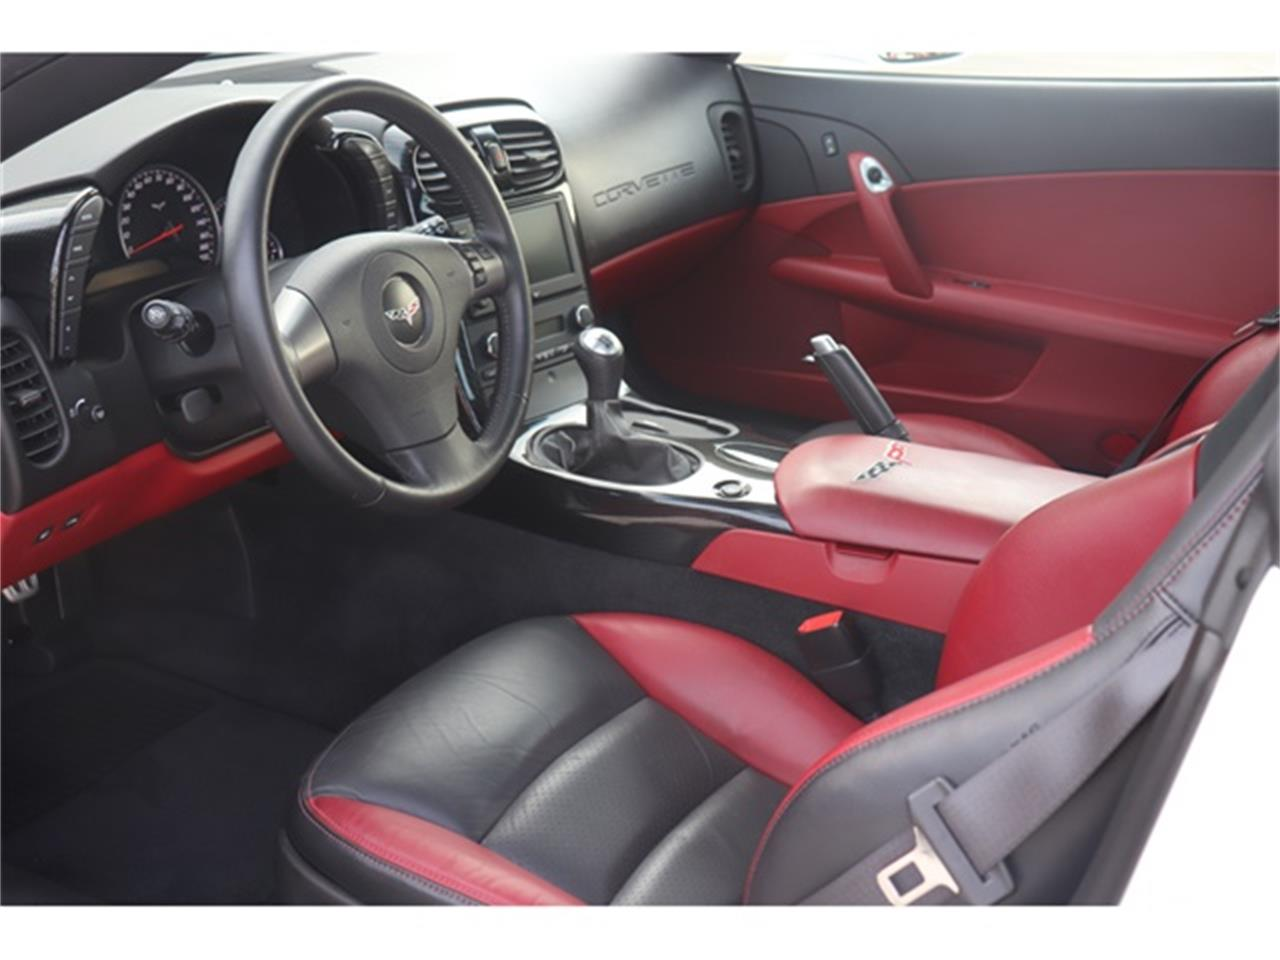 Large Picture of 2007 Corvette Z06 located in California - $42,900.00 - PD36